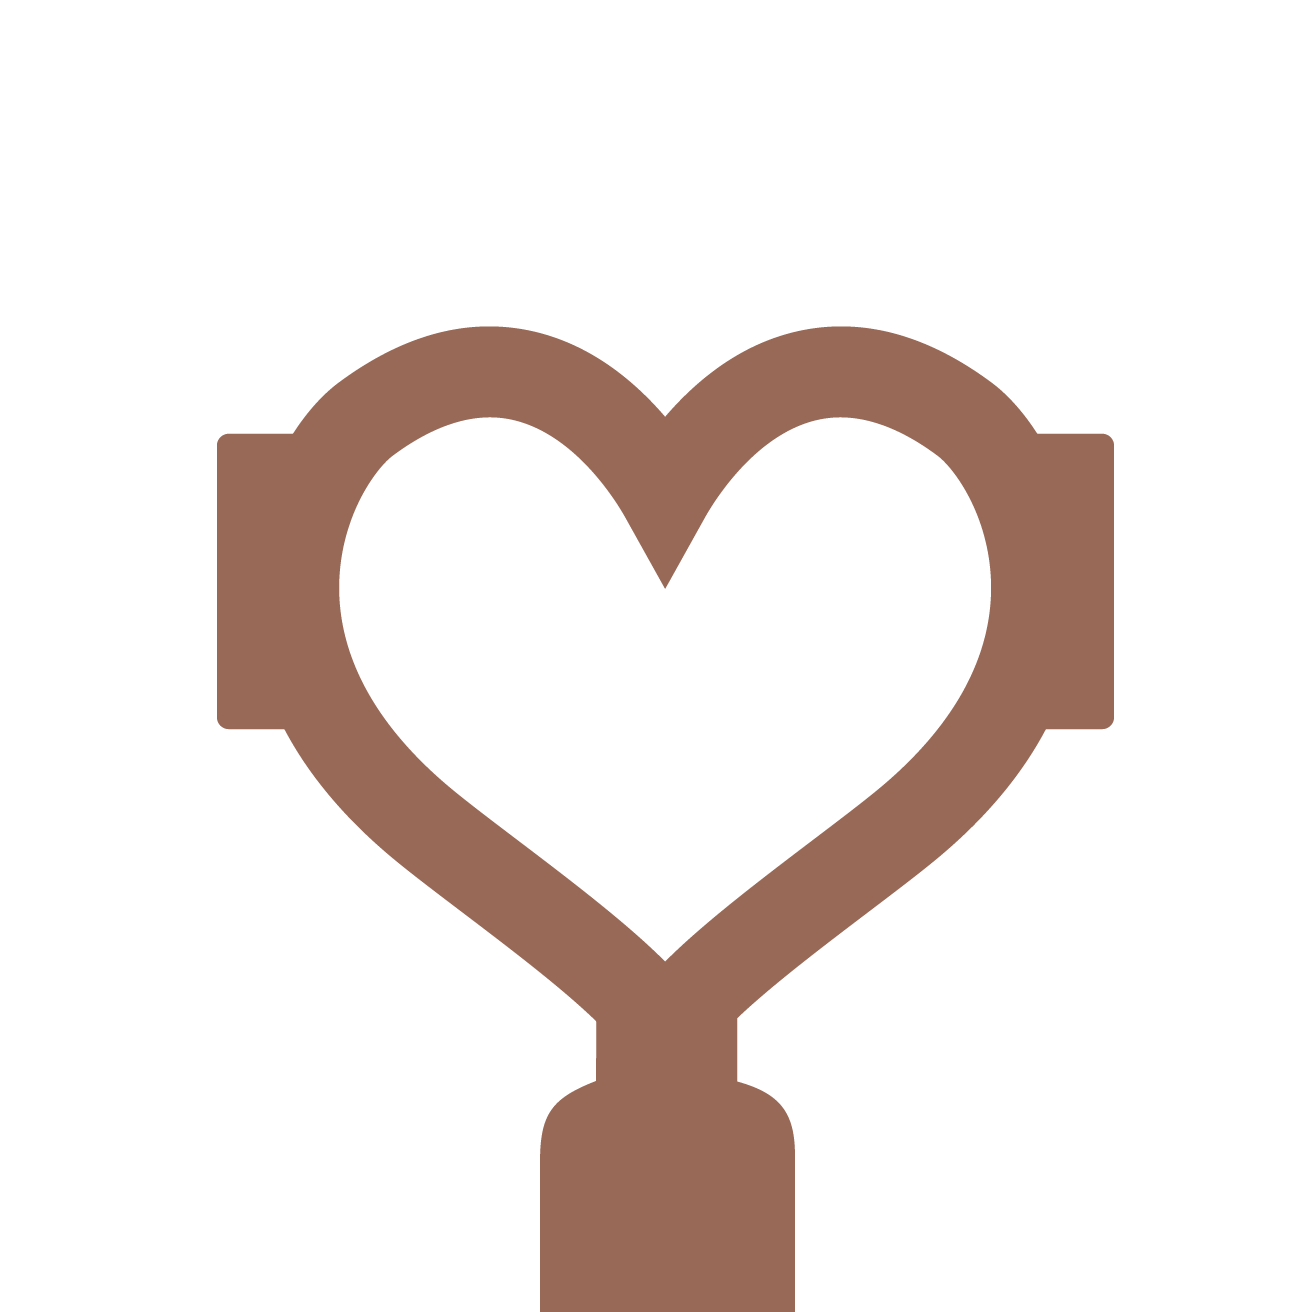 Kruve Coffee Sifter - 2 Filters, Black